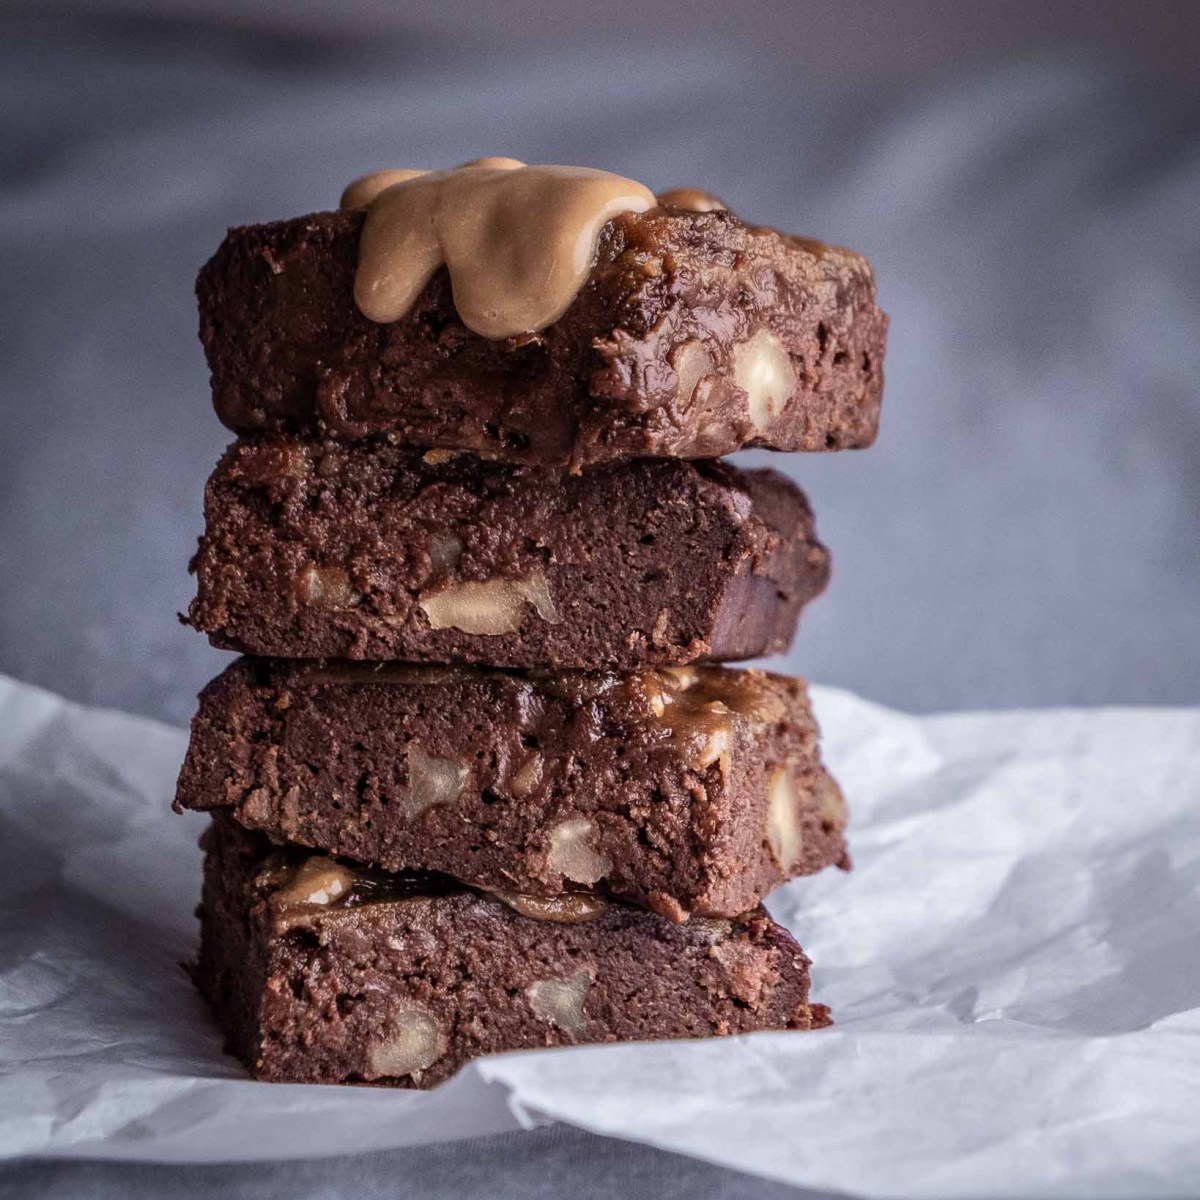 stack of gooey fudgy chocolate vegan brownies studded with walnuts and drizzled with peanut butter dripping down edges